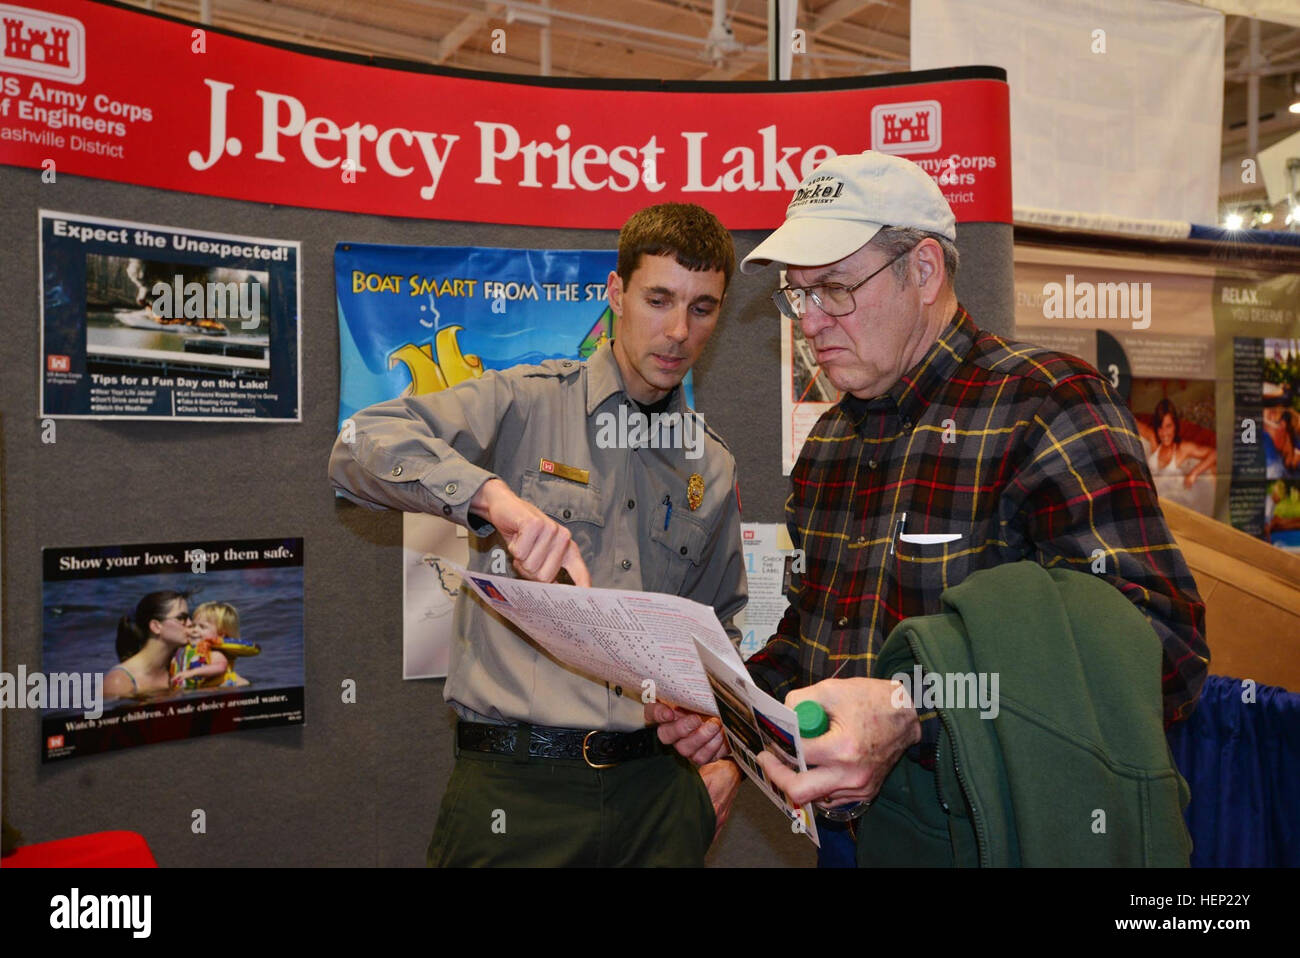 u s army corps of engineers nashville district park ranger noel smith from j percy priest lake shows steve enfinger from columbia tenn a map of the j